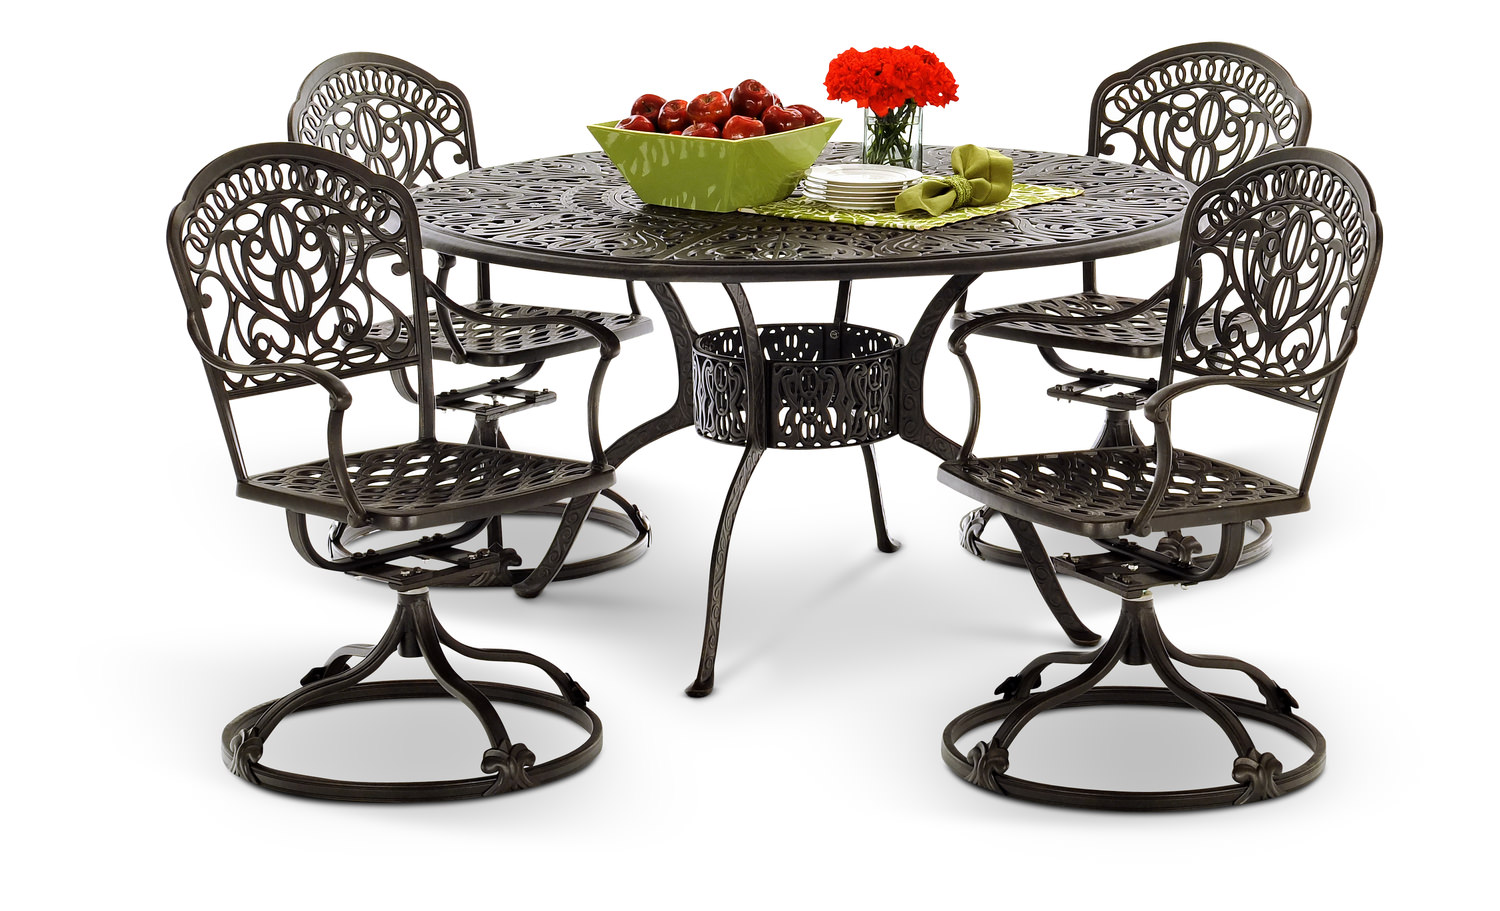 Tuscany 5 Piece Swivel Patio Dining Set By Hom Furniture